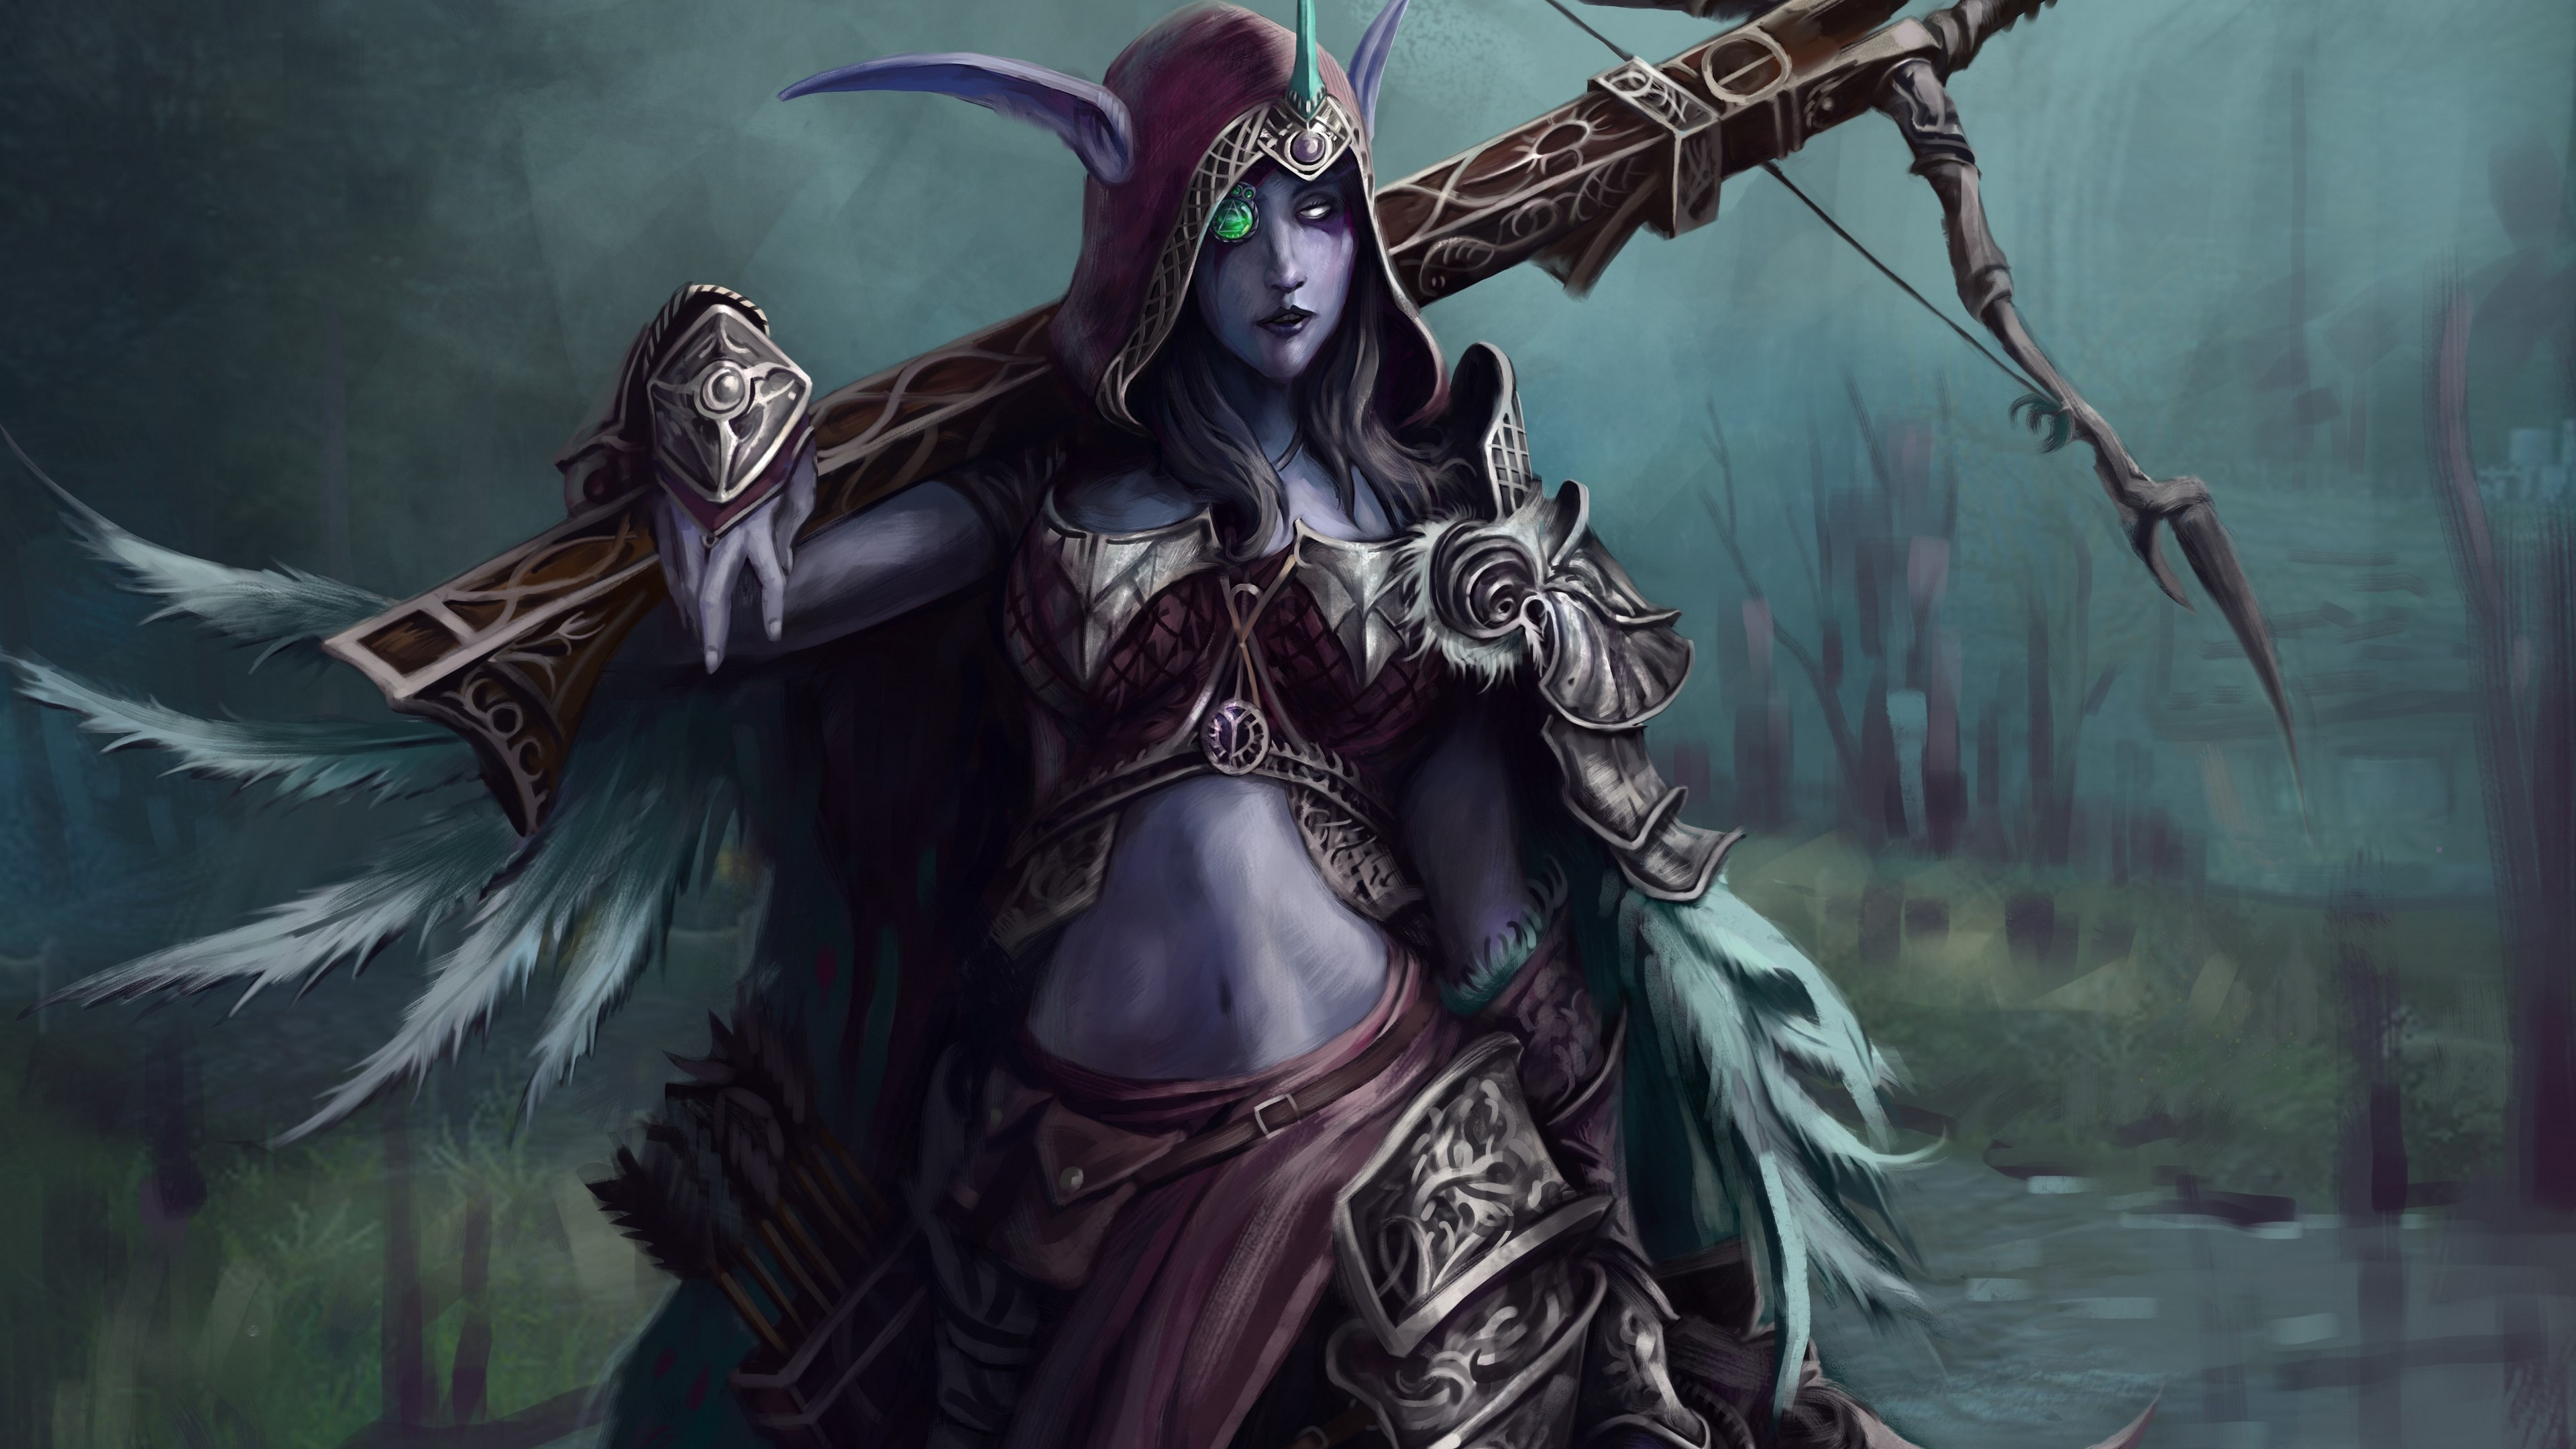 World Of Warcraft Wallpaper Bfa: Sylvanas Windrunner Wallpaper (78+ Images